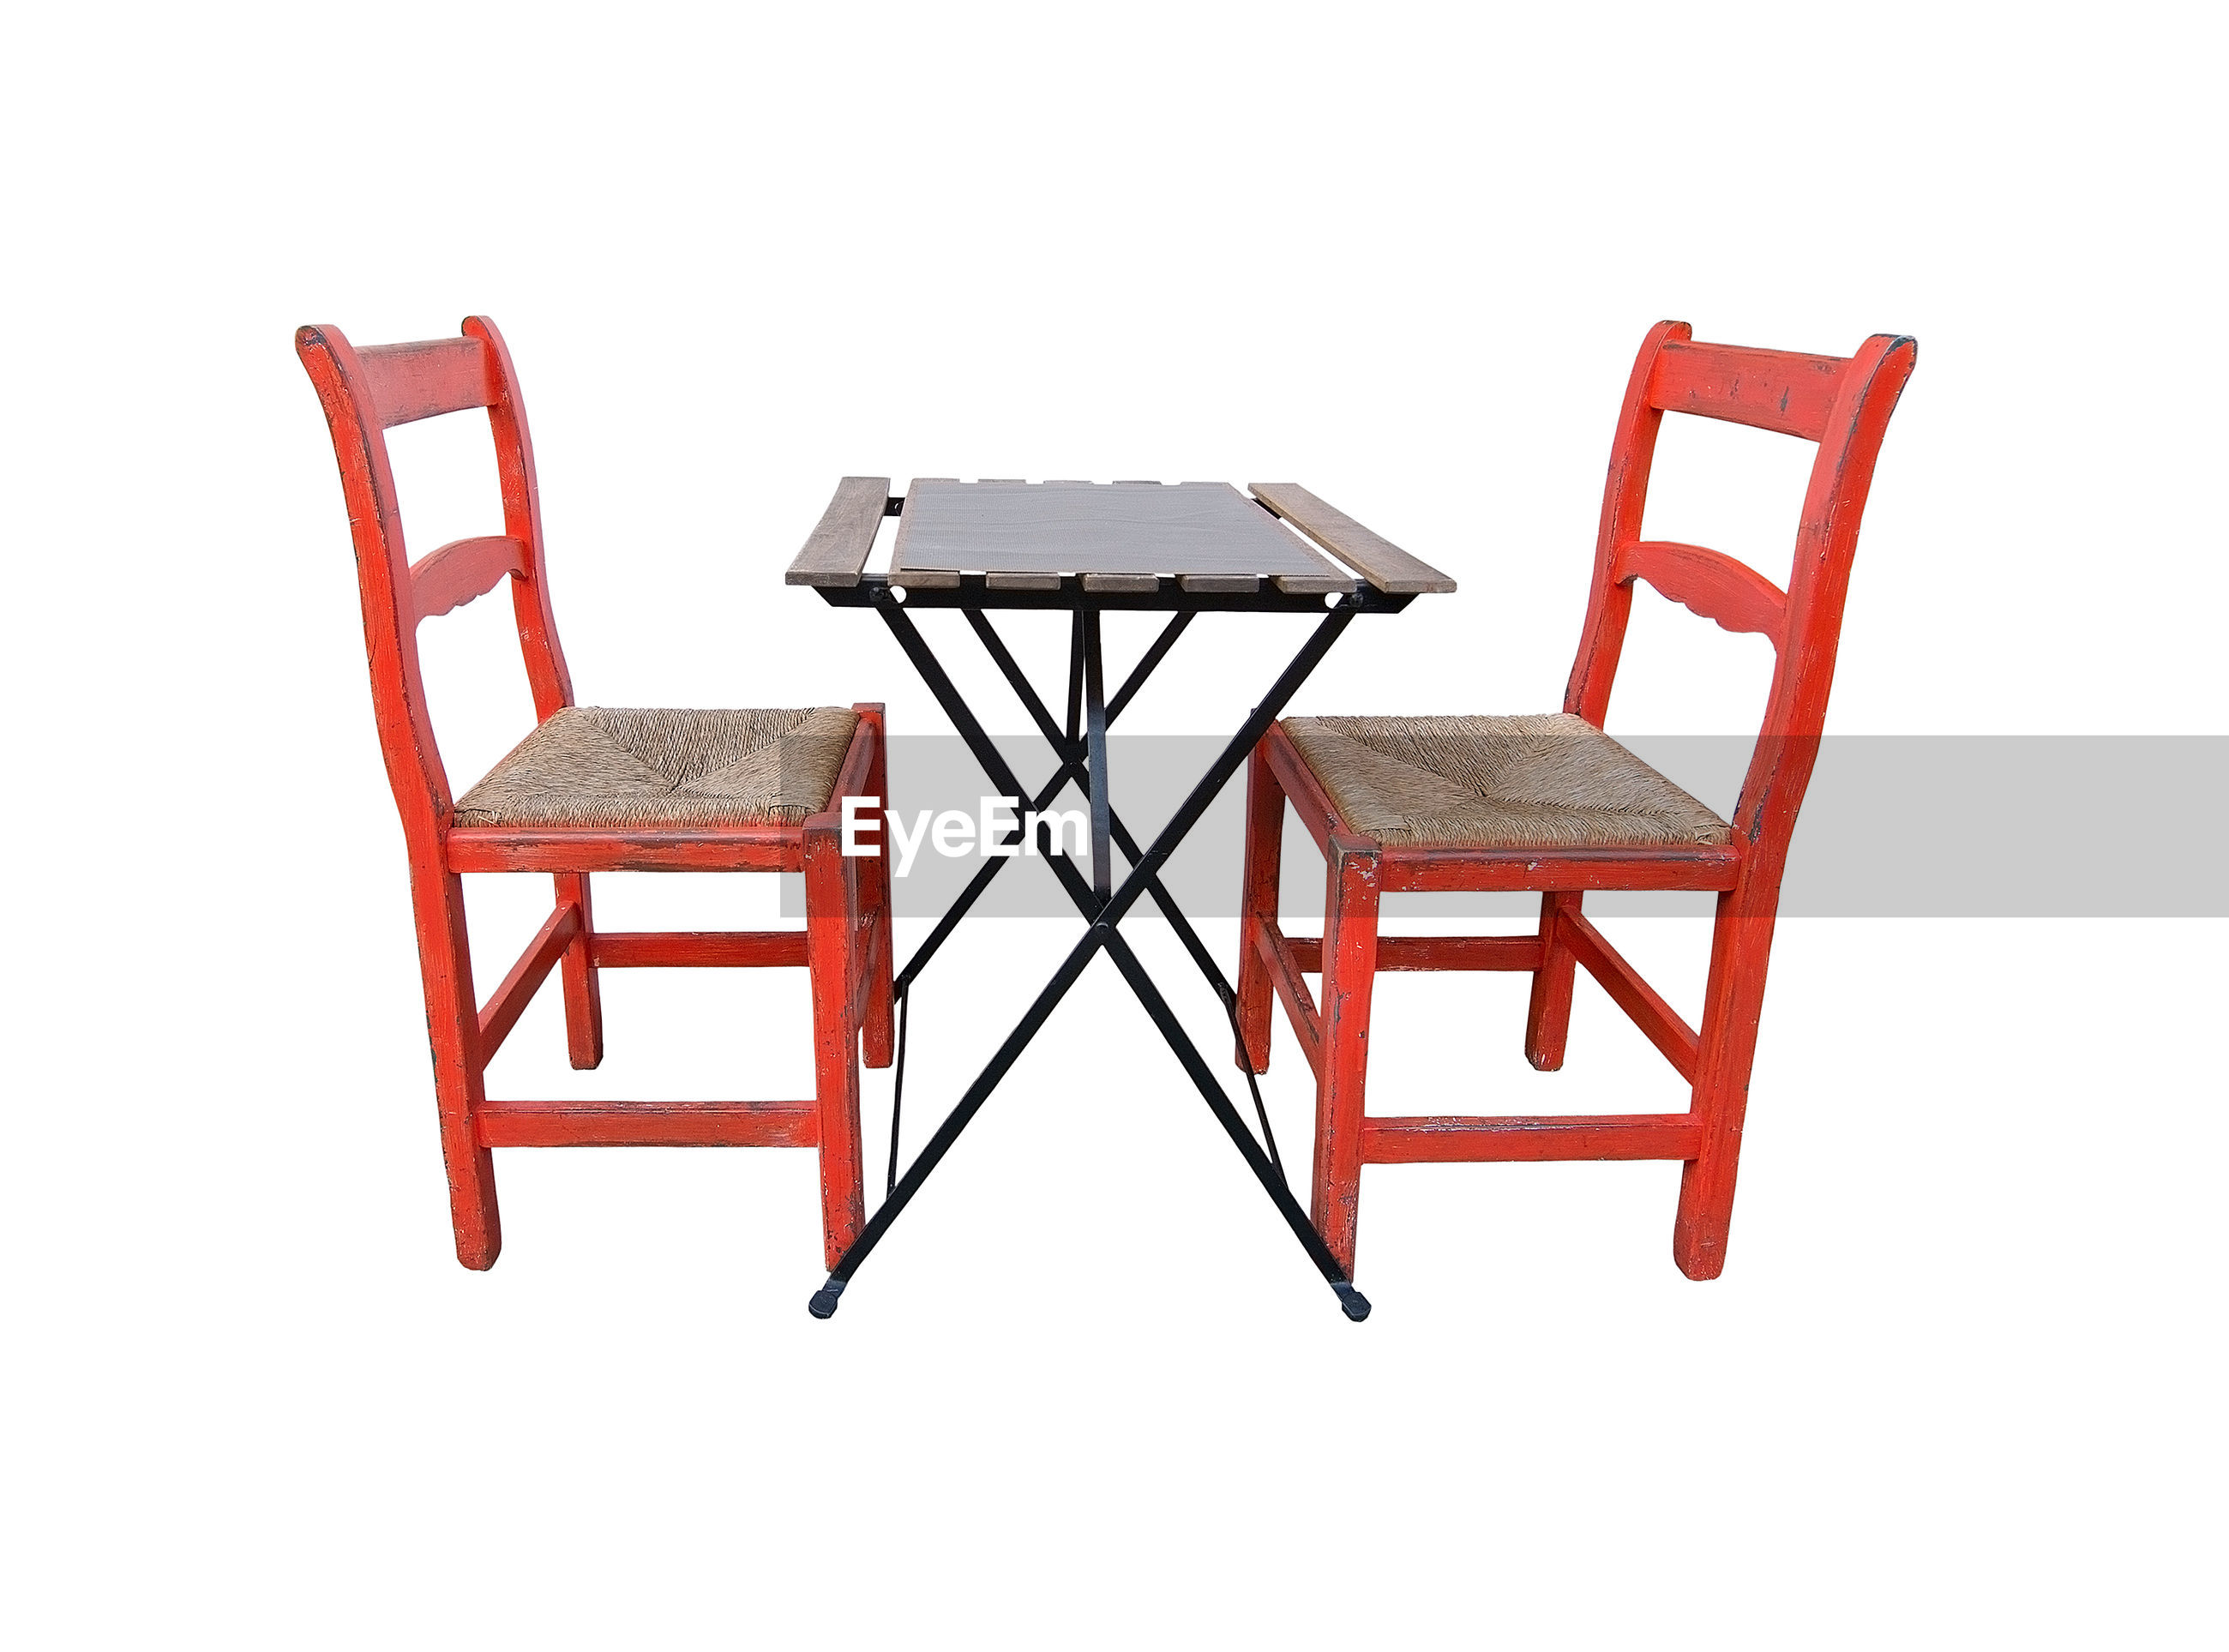 Chairs and table against white background